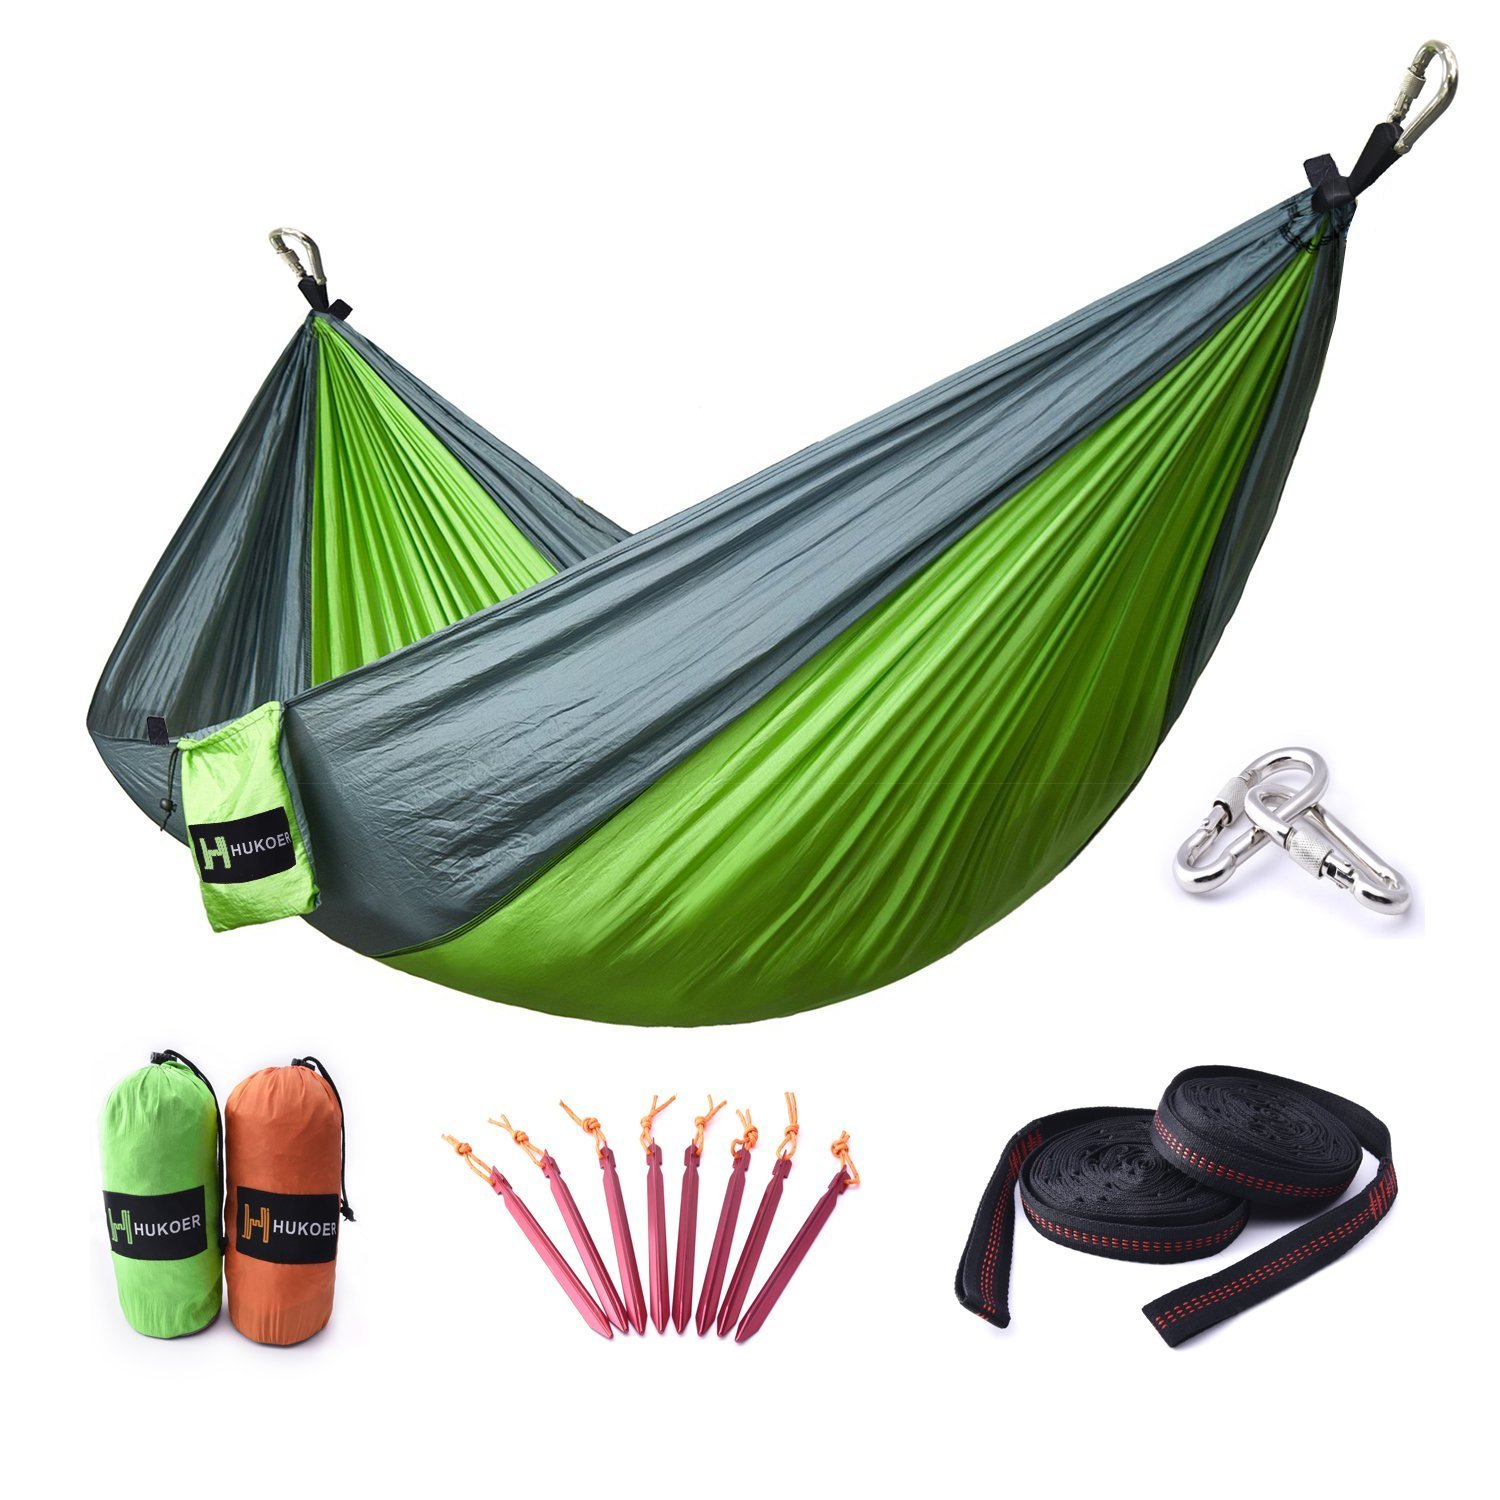 HUKOER Hammock Double Camping Hammock Portable Nylon Garden Hammock with Straps/Stakes Max 550 lbs Capacity for Backpacking, Camping, Travel, Beach, Yard